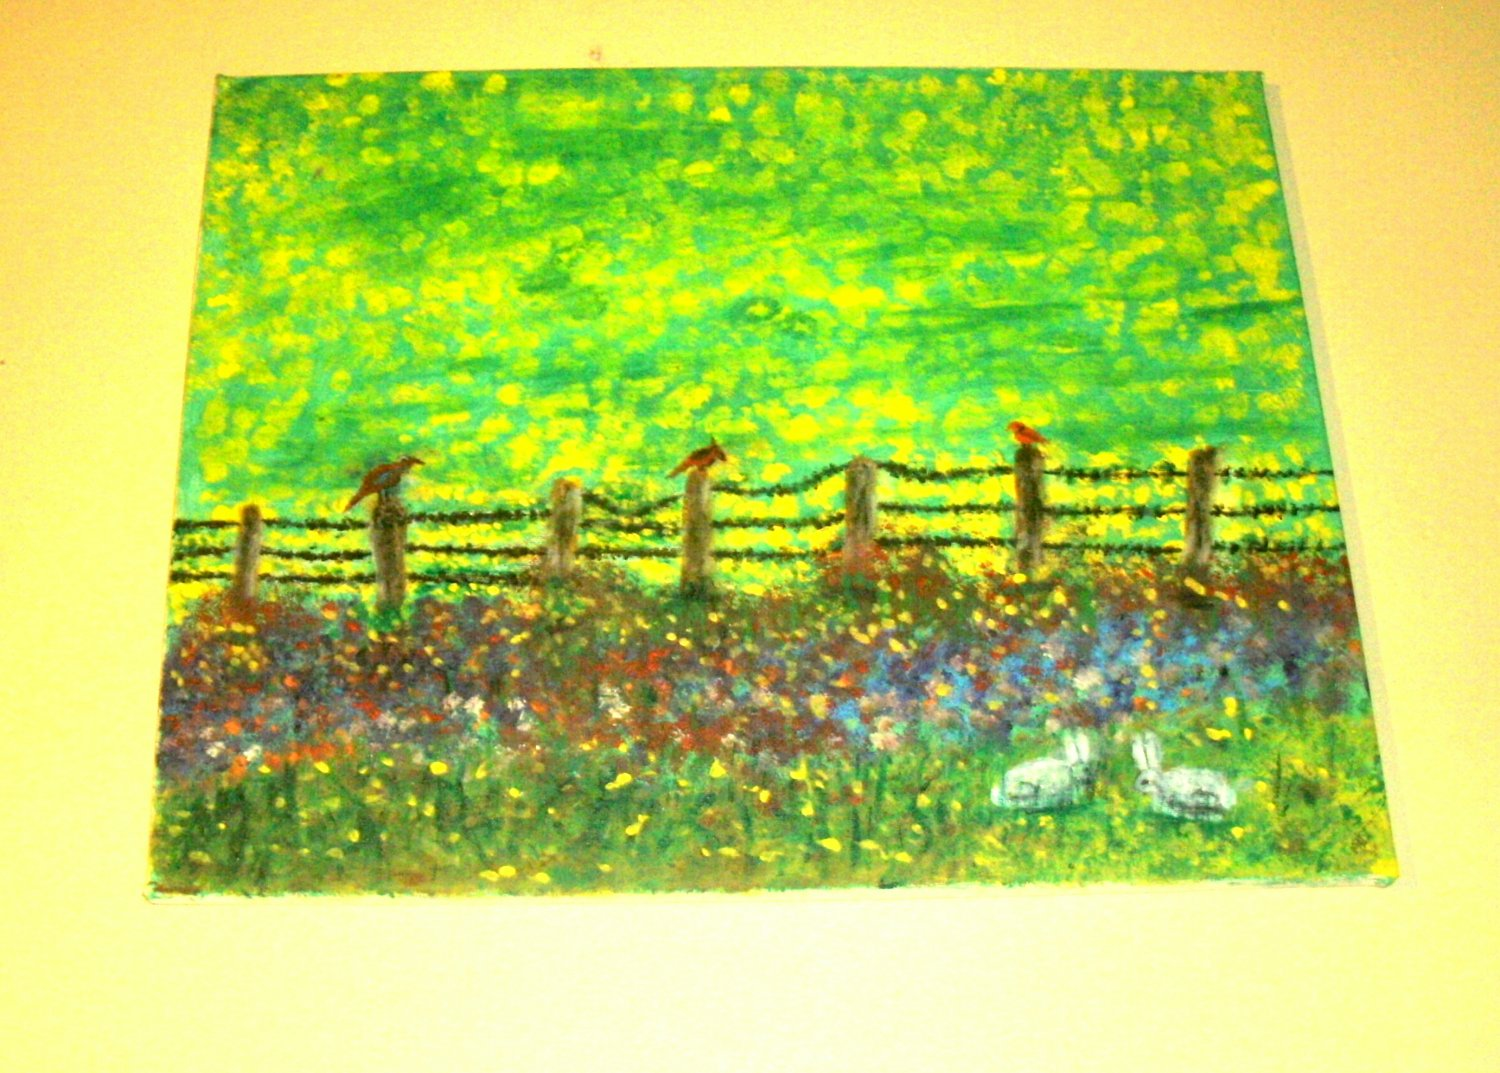 Flowers along Fence with Birds & Rabbits/Impressionism/Acrylic/Original/